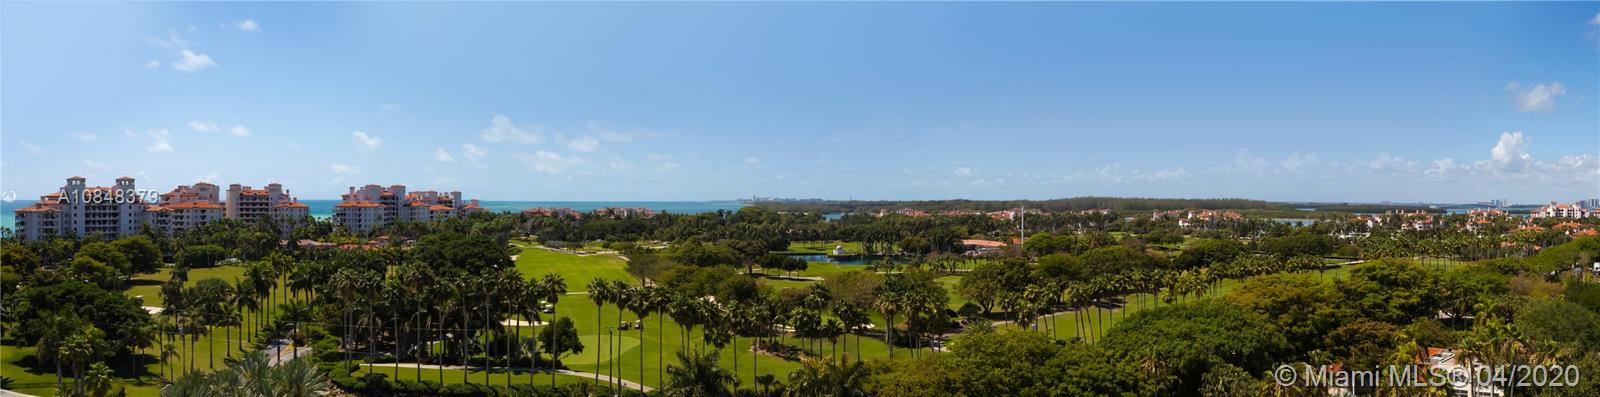 6832 Fisher Island Drive, Unit #6832 Luxury Real Estate